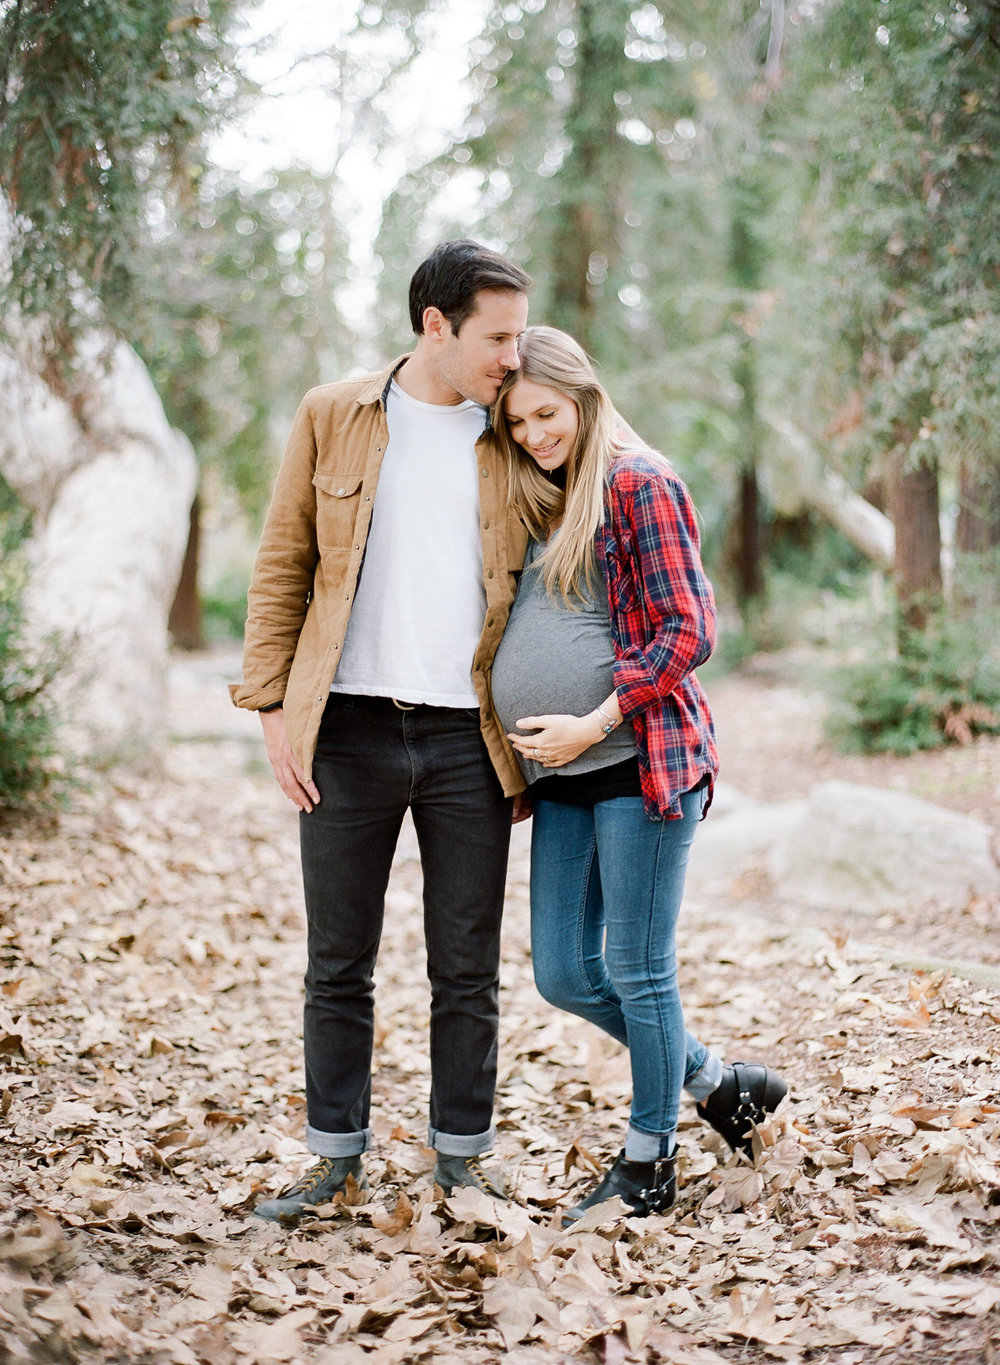 Chrissy & David Maternity Session-33.jpg